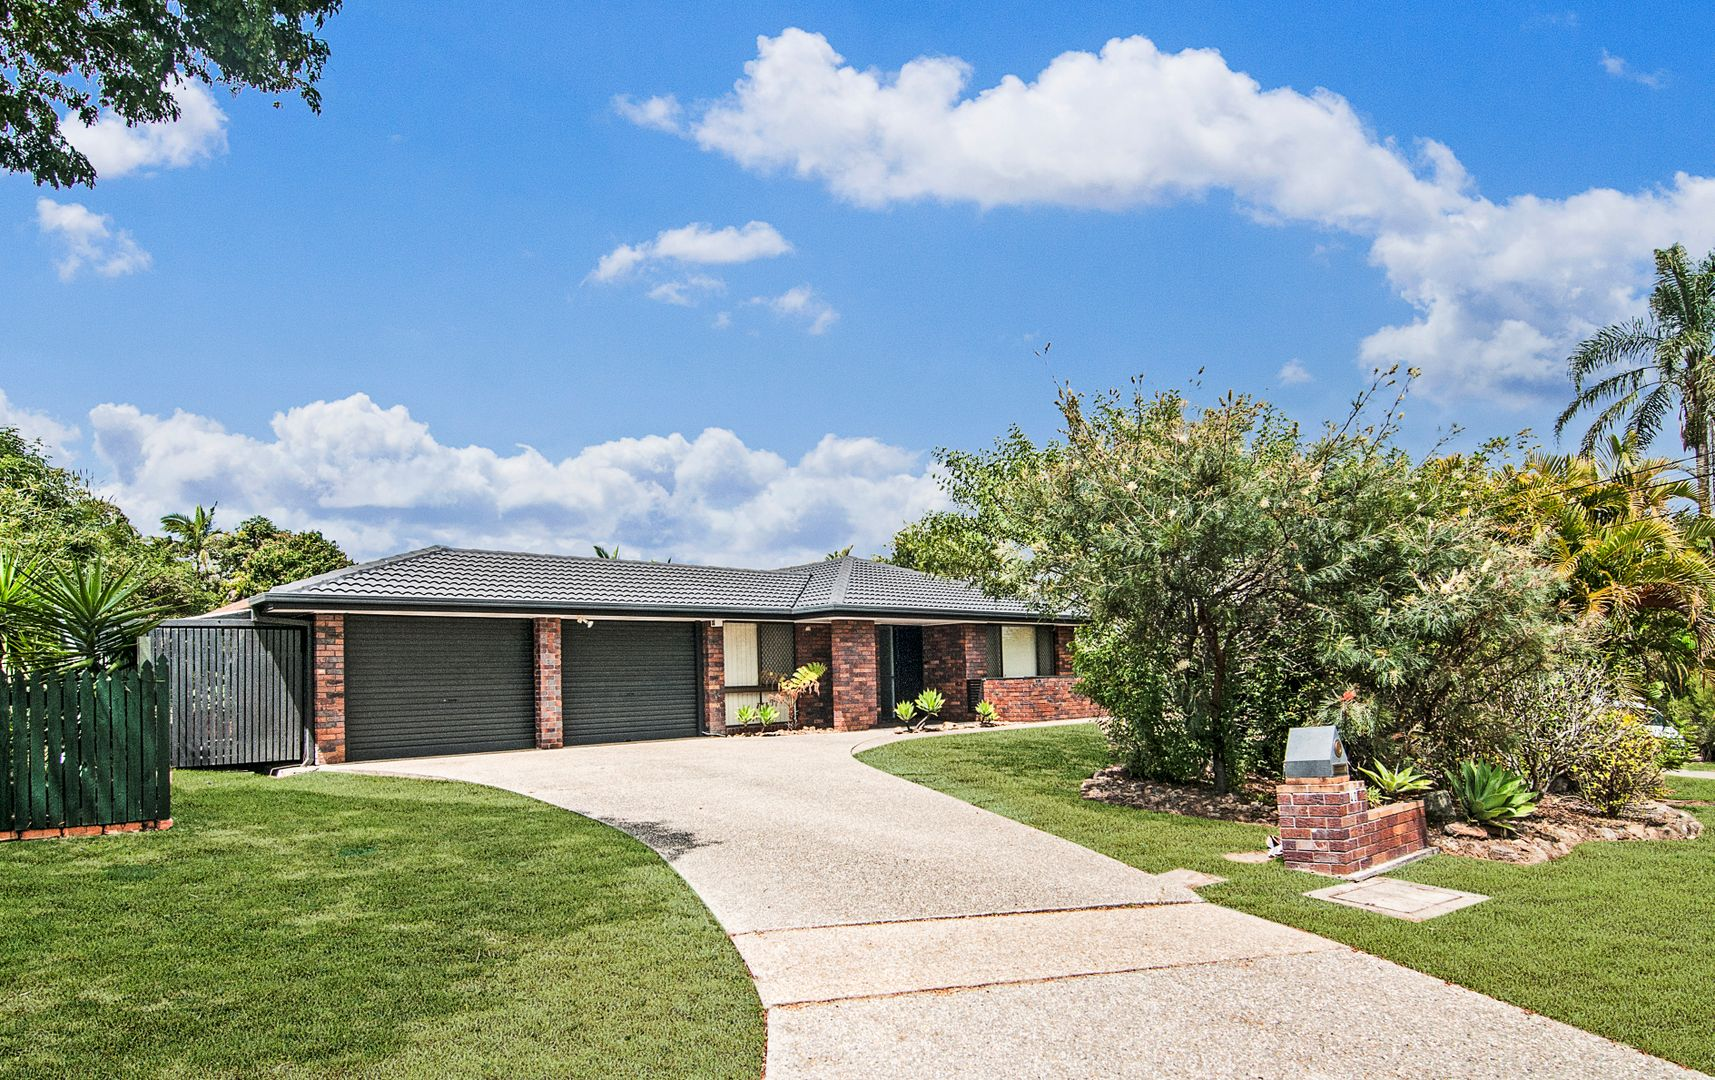 40 Straight Drive, Browns Plains QLD 4118, Image 0